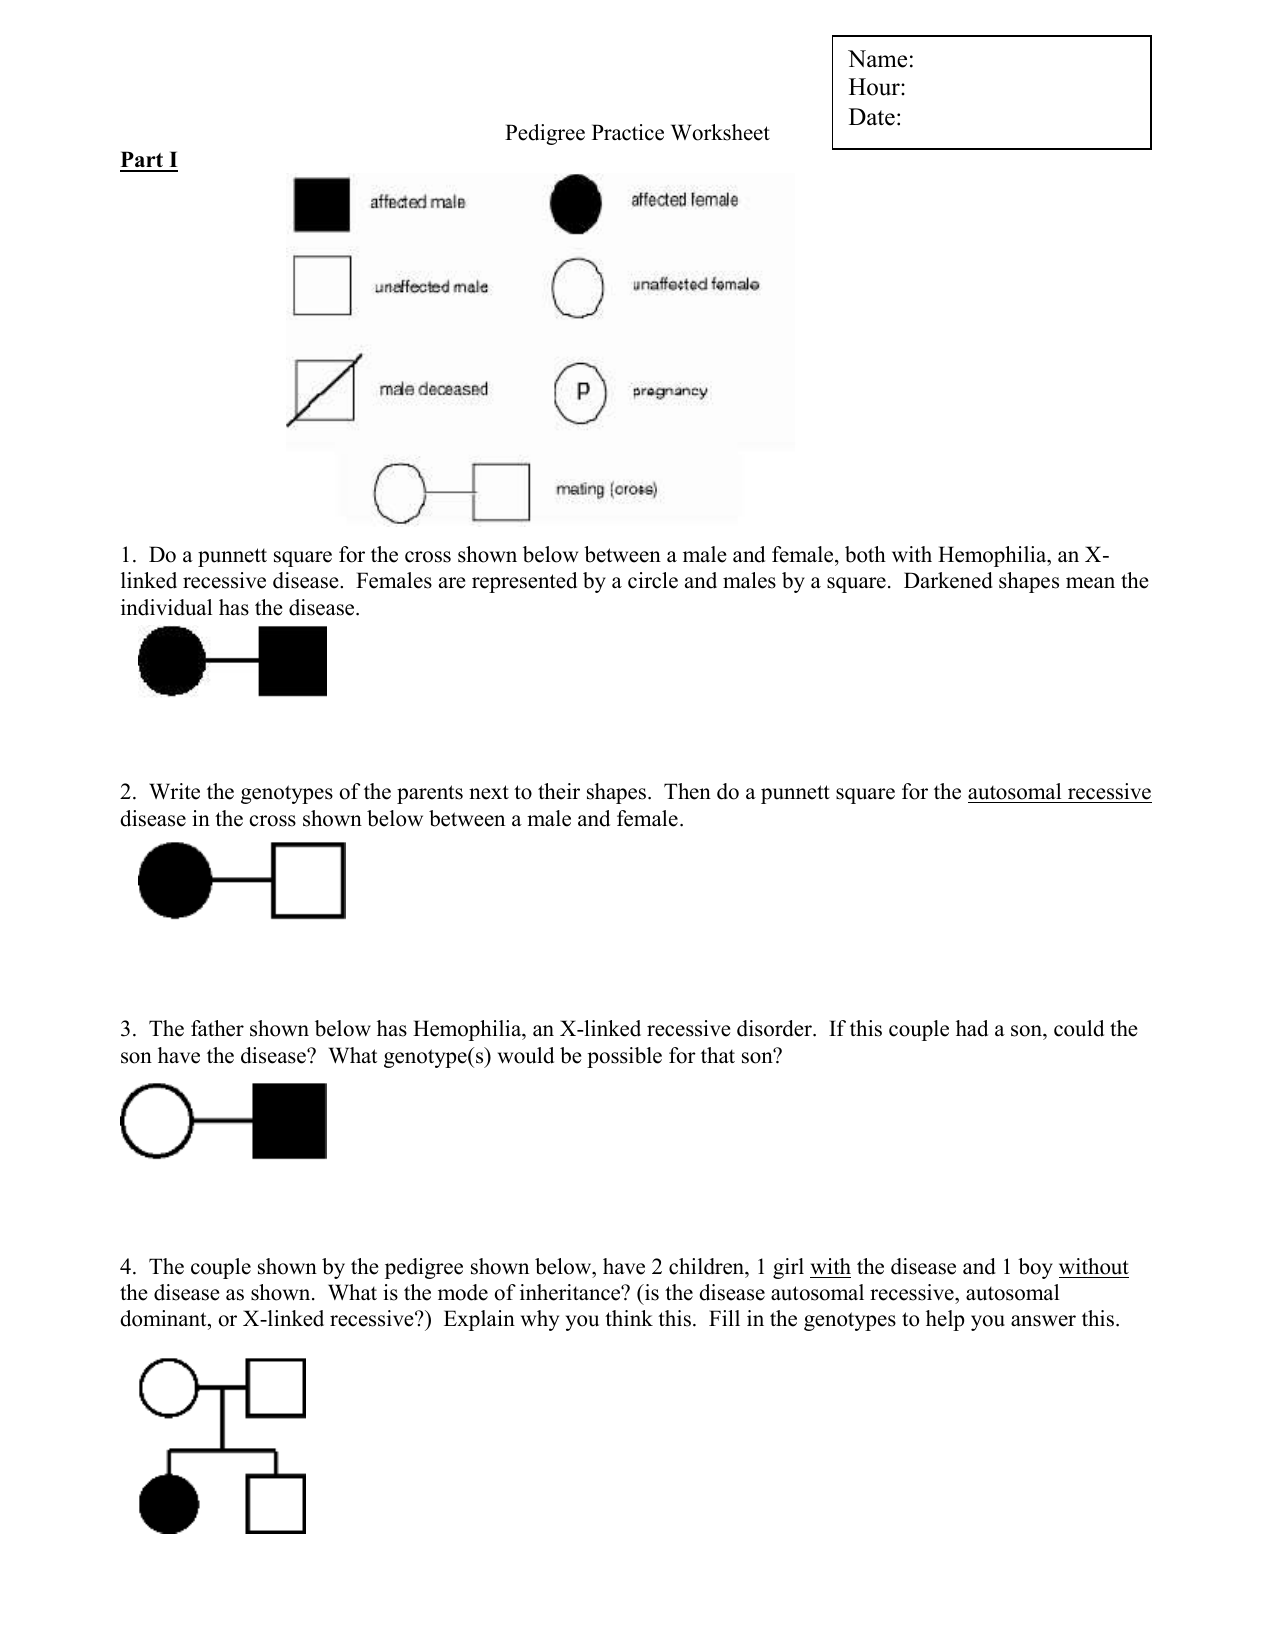 Pedigrees Practice Worksheet Answers - Worksheet List